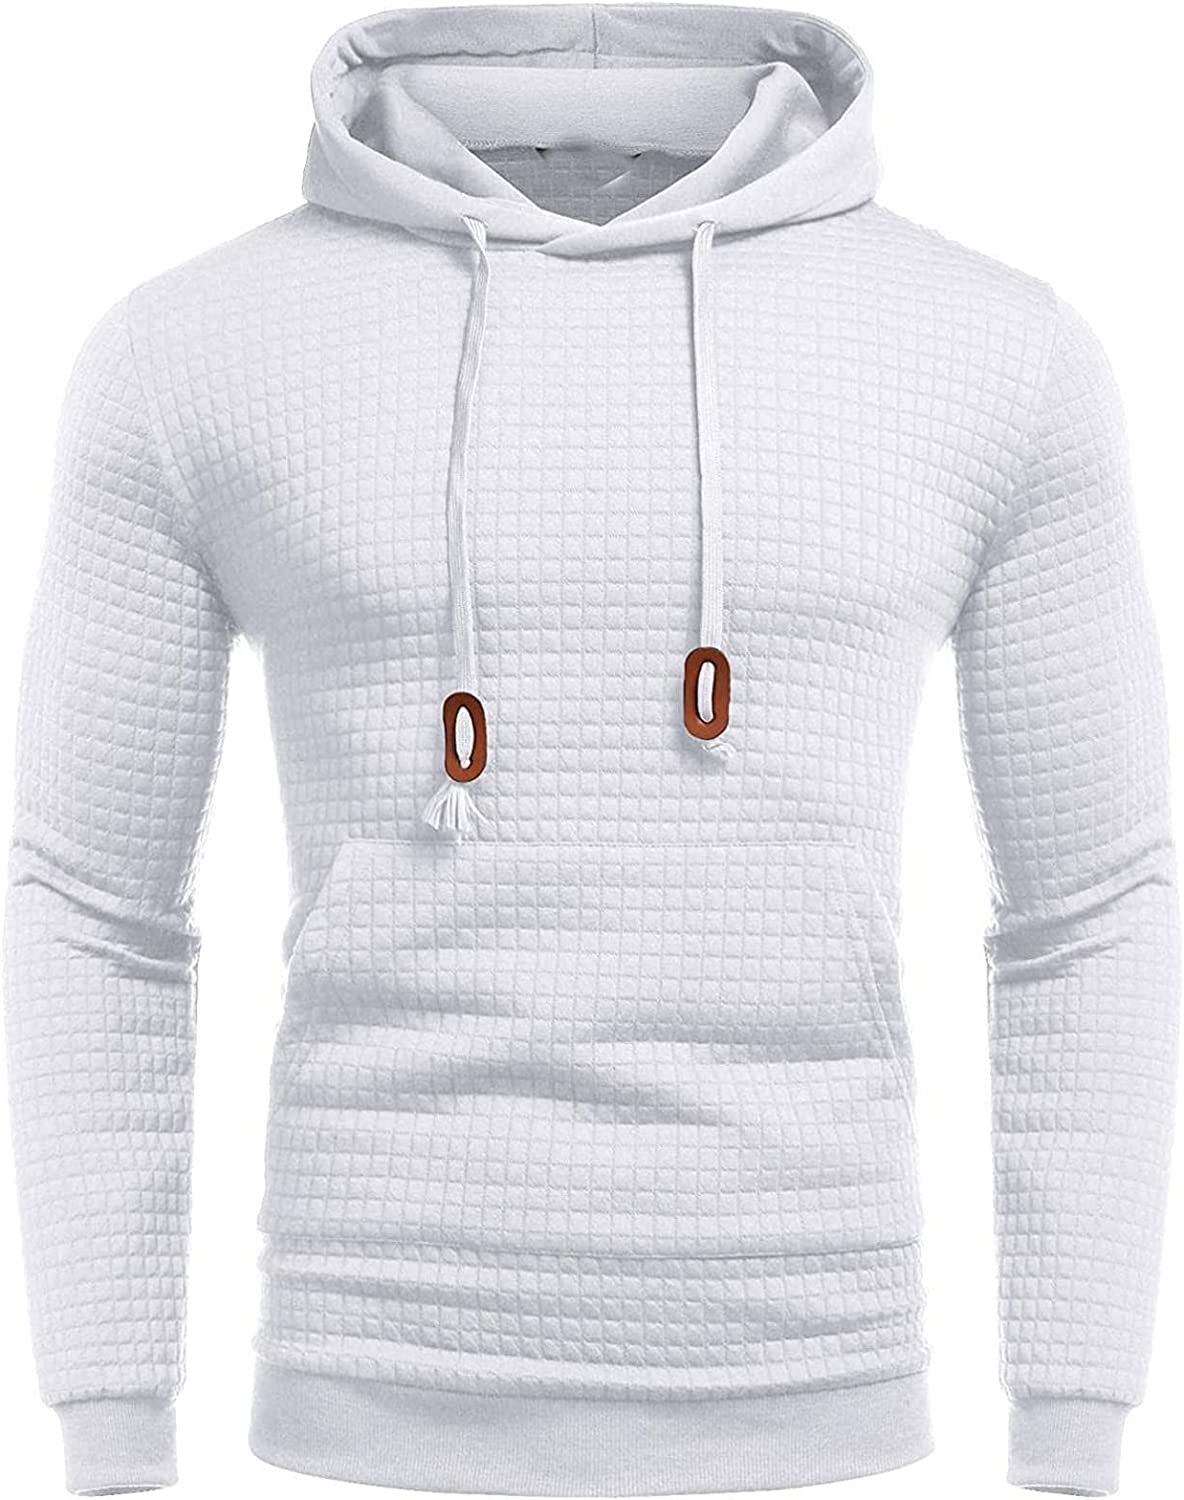 Men Hooded Sweatshirts Casual Sports Hoodies Pullover Yoga Workout Long Sleeve Tops Men's Sweaters with Pocket